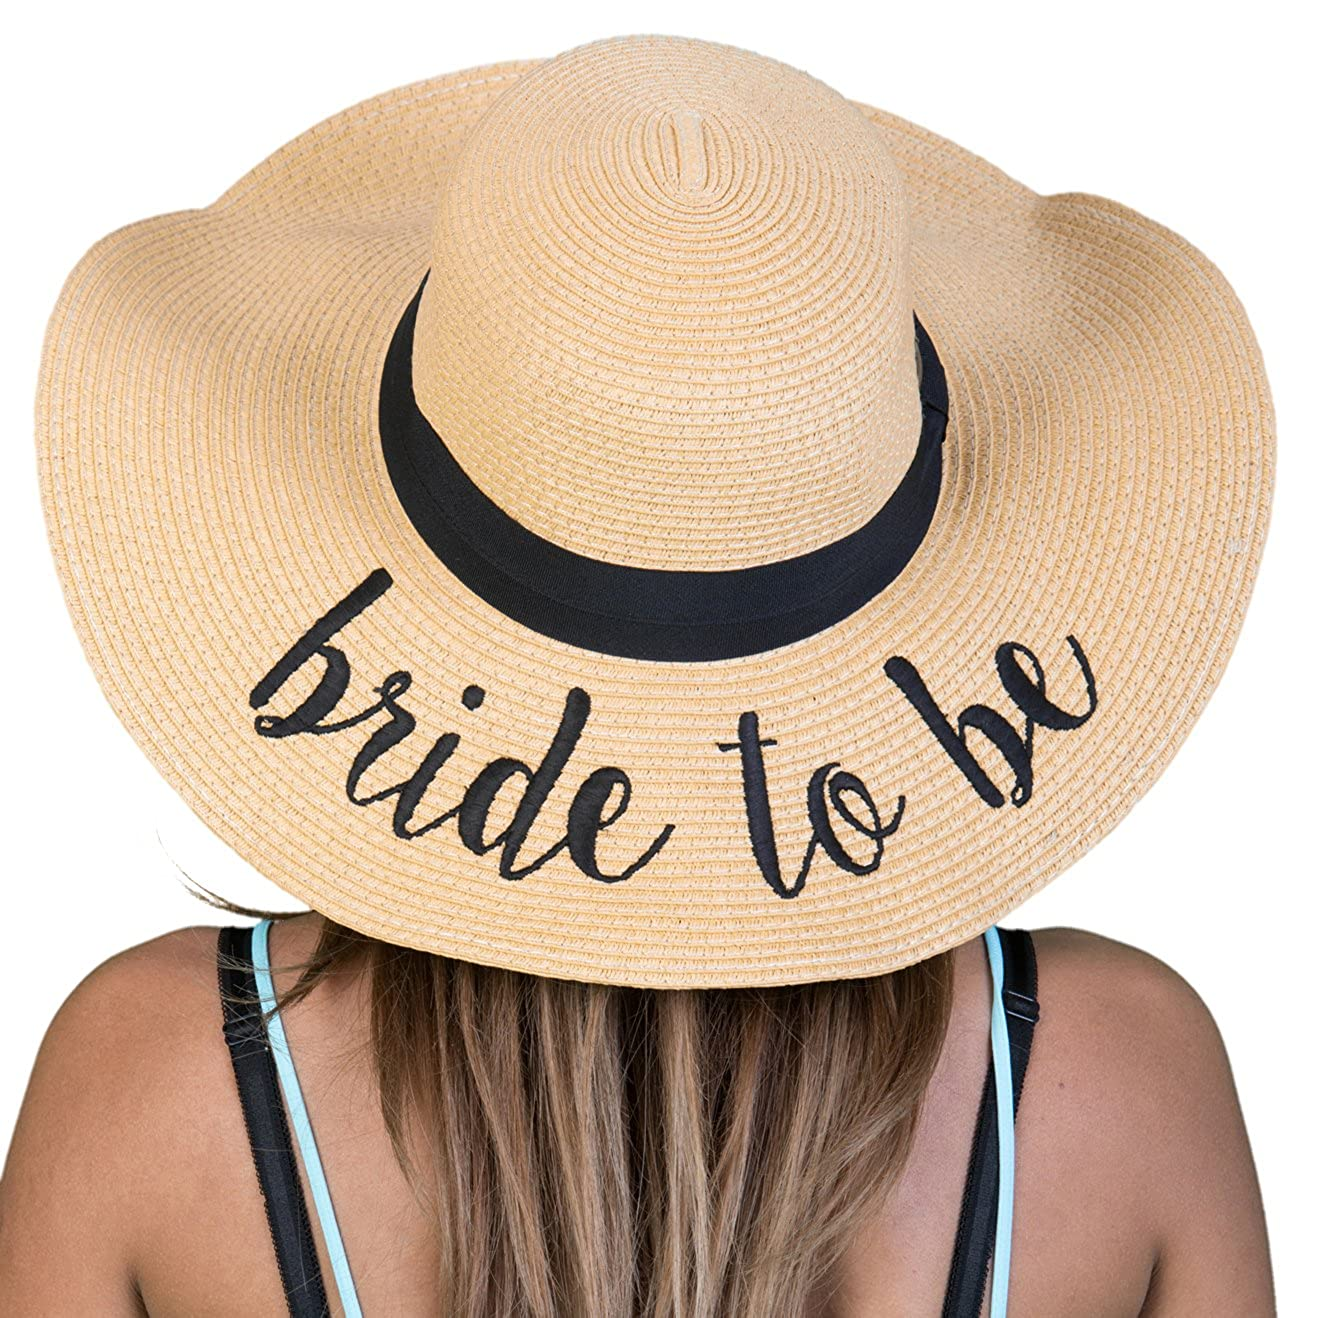 1 Bride to Be Funky Junque Women's Bold Cursive Embroidered Adjustable Beach Floppy Sun Hat